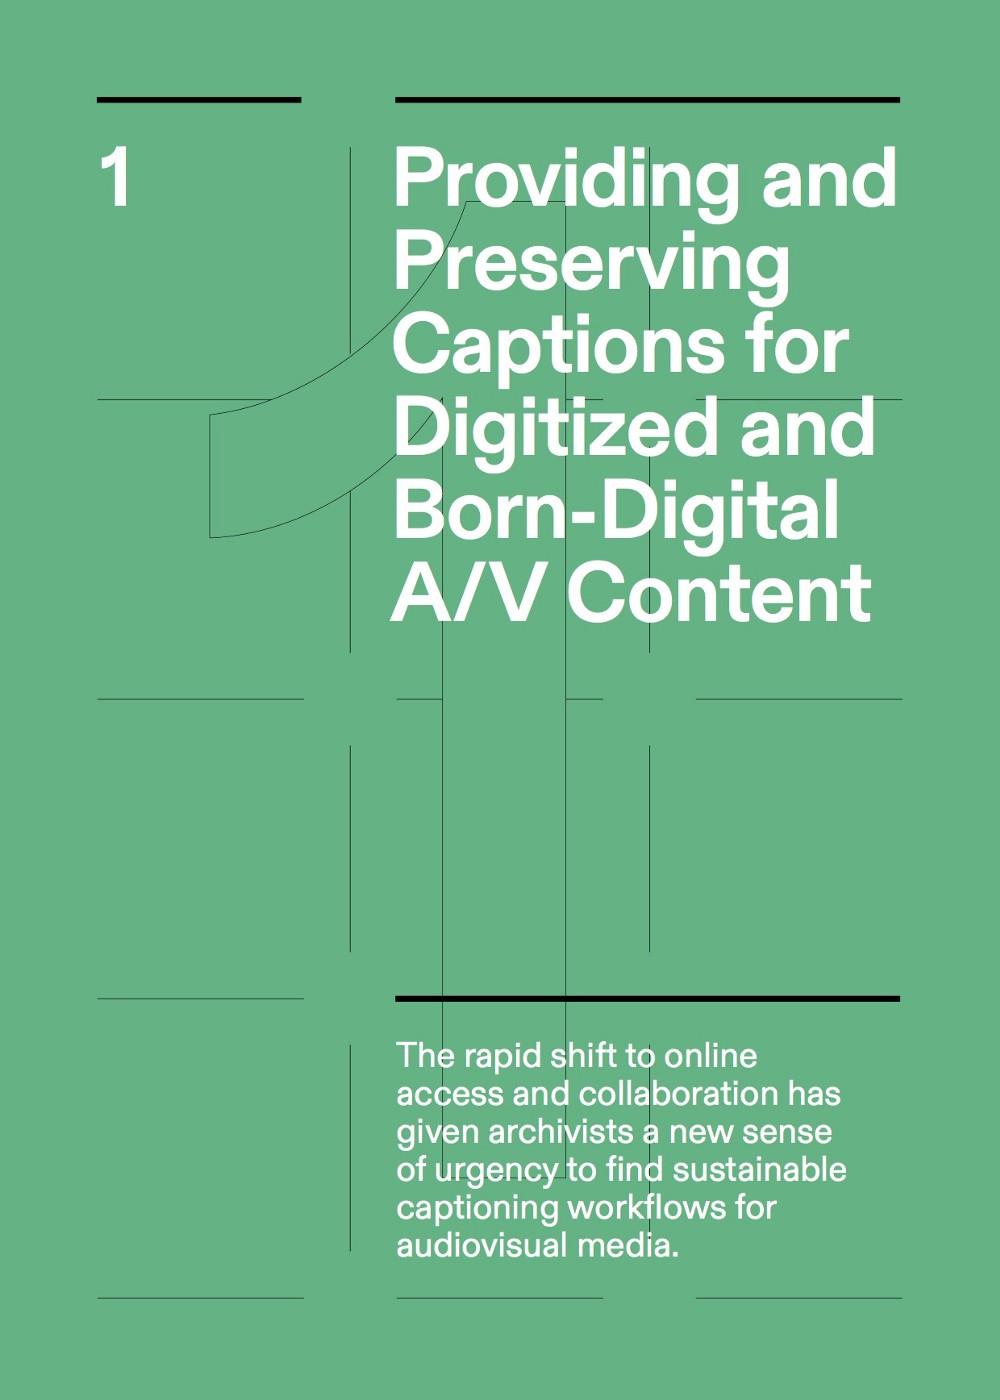 1. Providing and Preserving Captions for Digitized and Born-Digital A/V Content